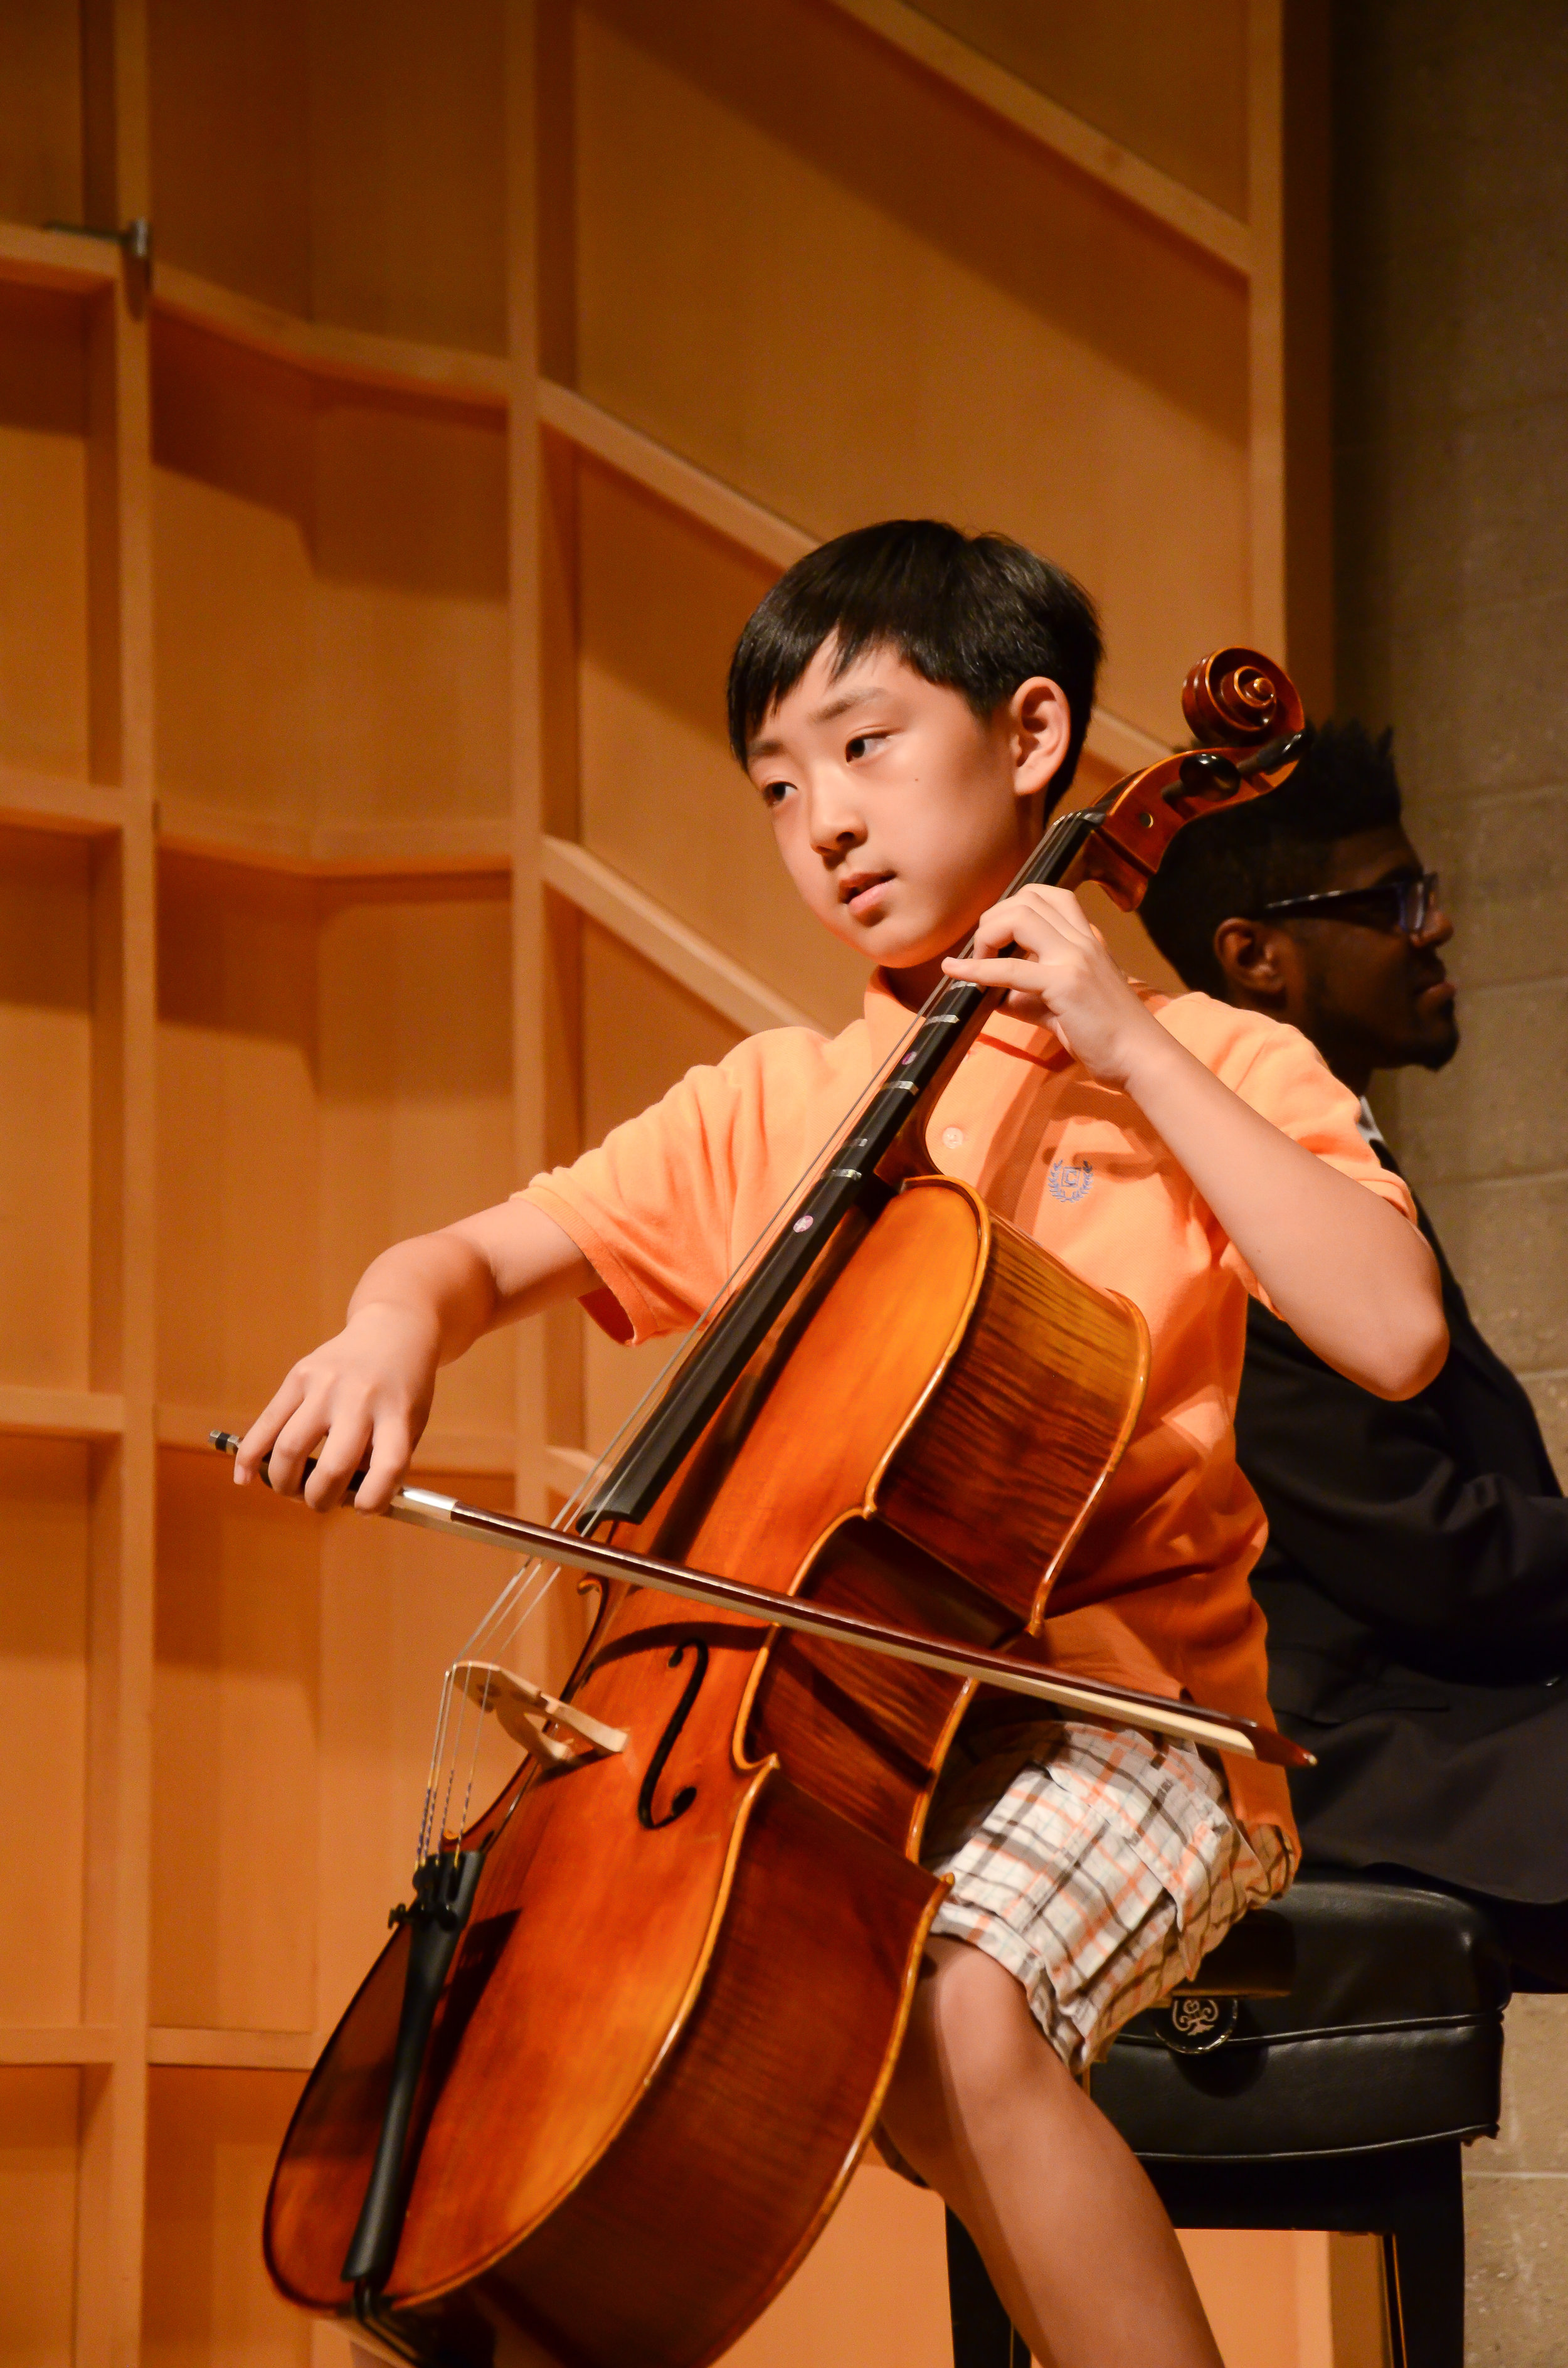 cello-lessons-in-fort-lee.jpg